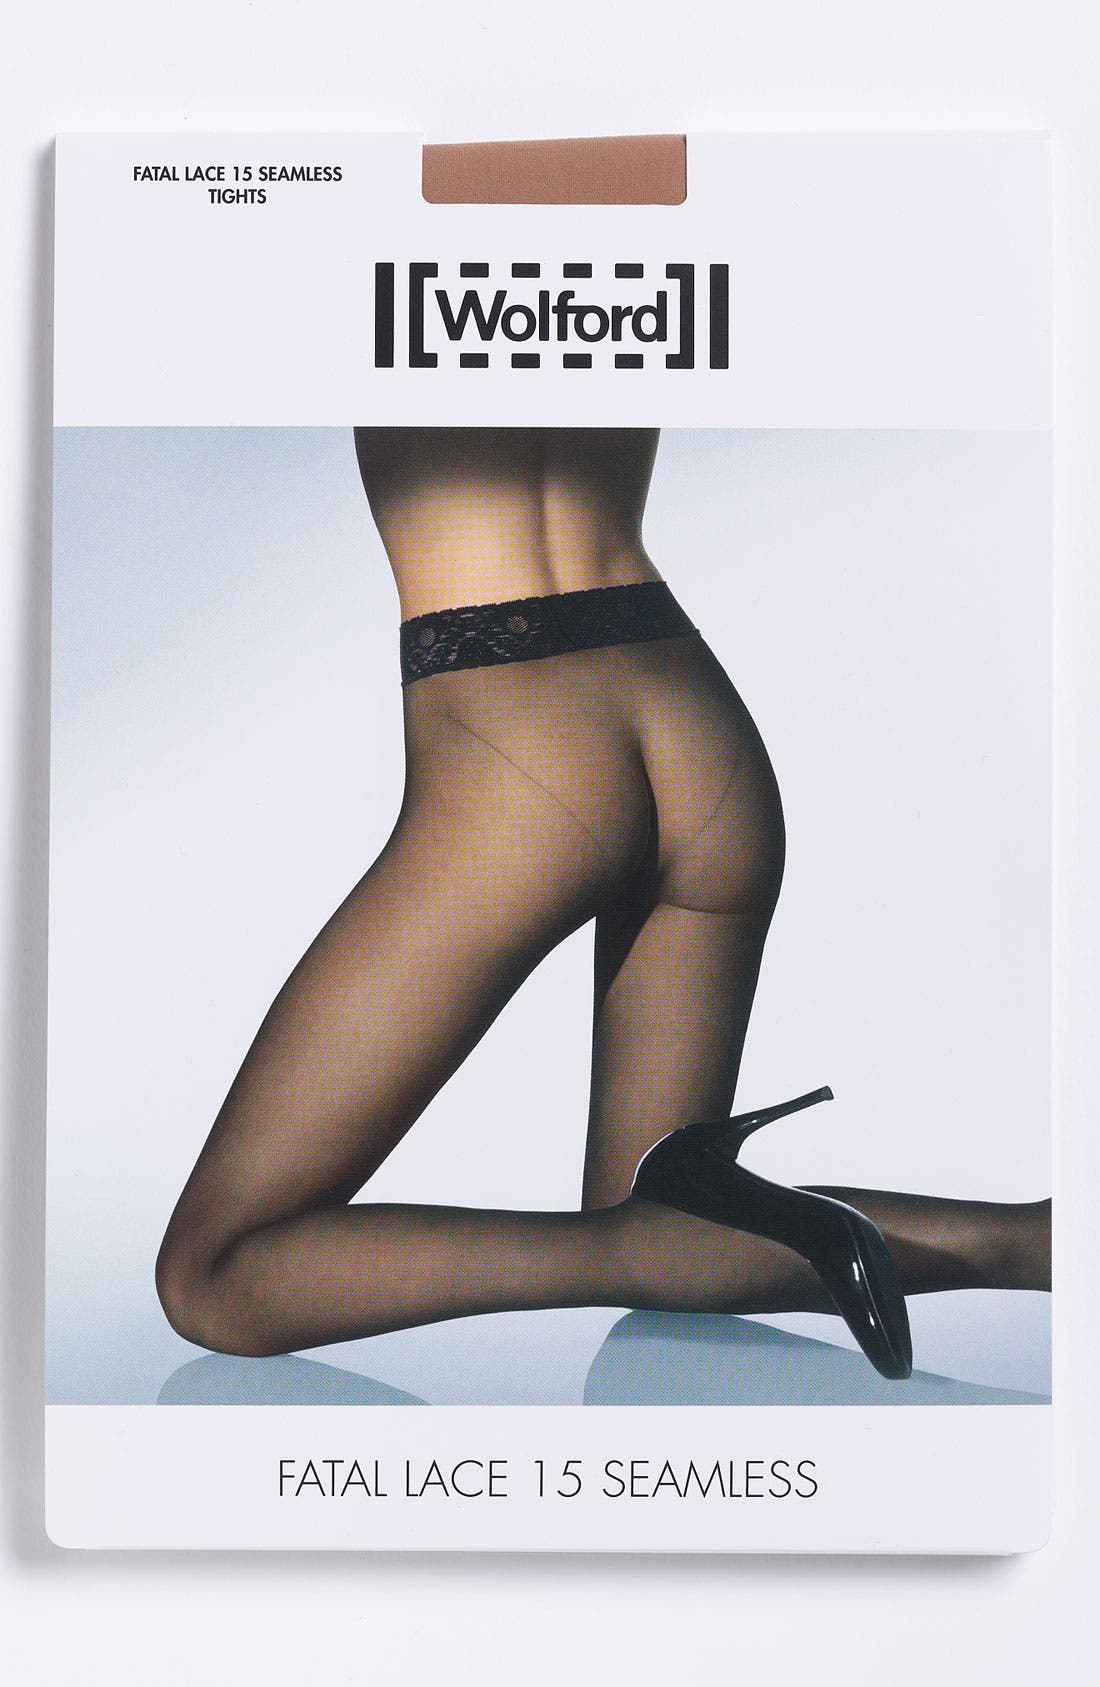 Alternate Image 3  - Wolford 'Fatal Lace 15' Seamless Stockings